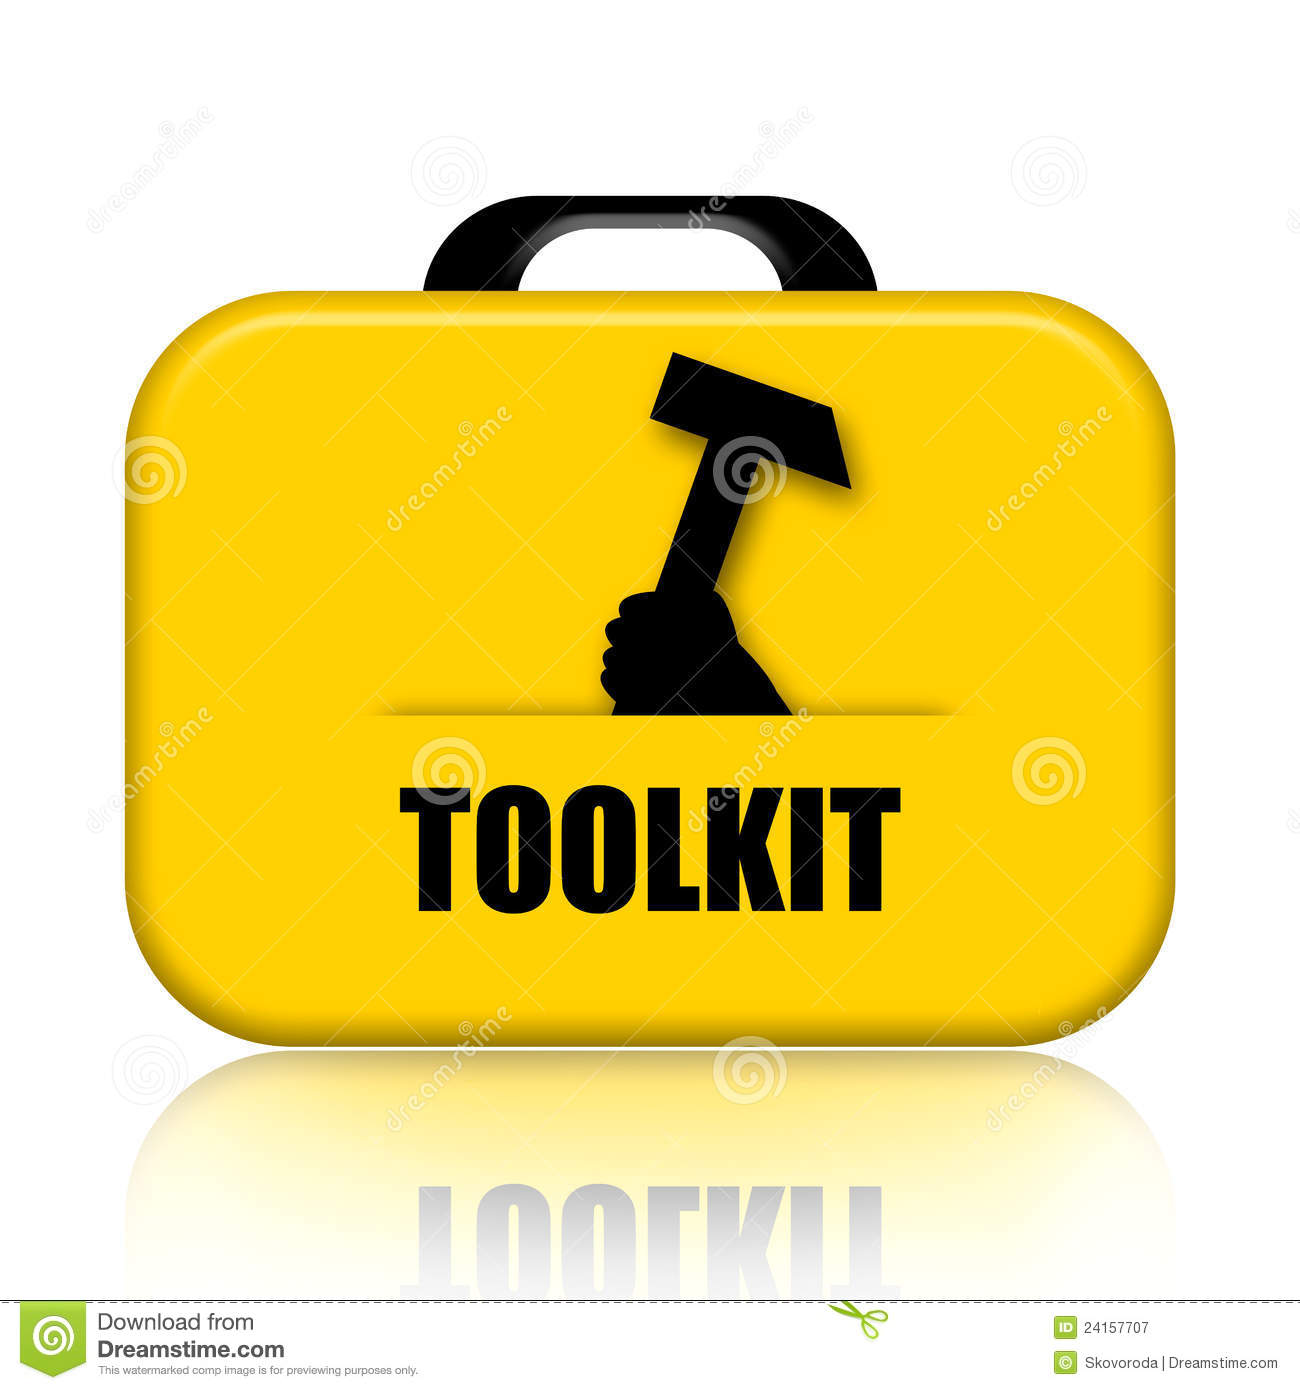 Toolkit Royalty Free Stock Photography Image 24157707